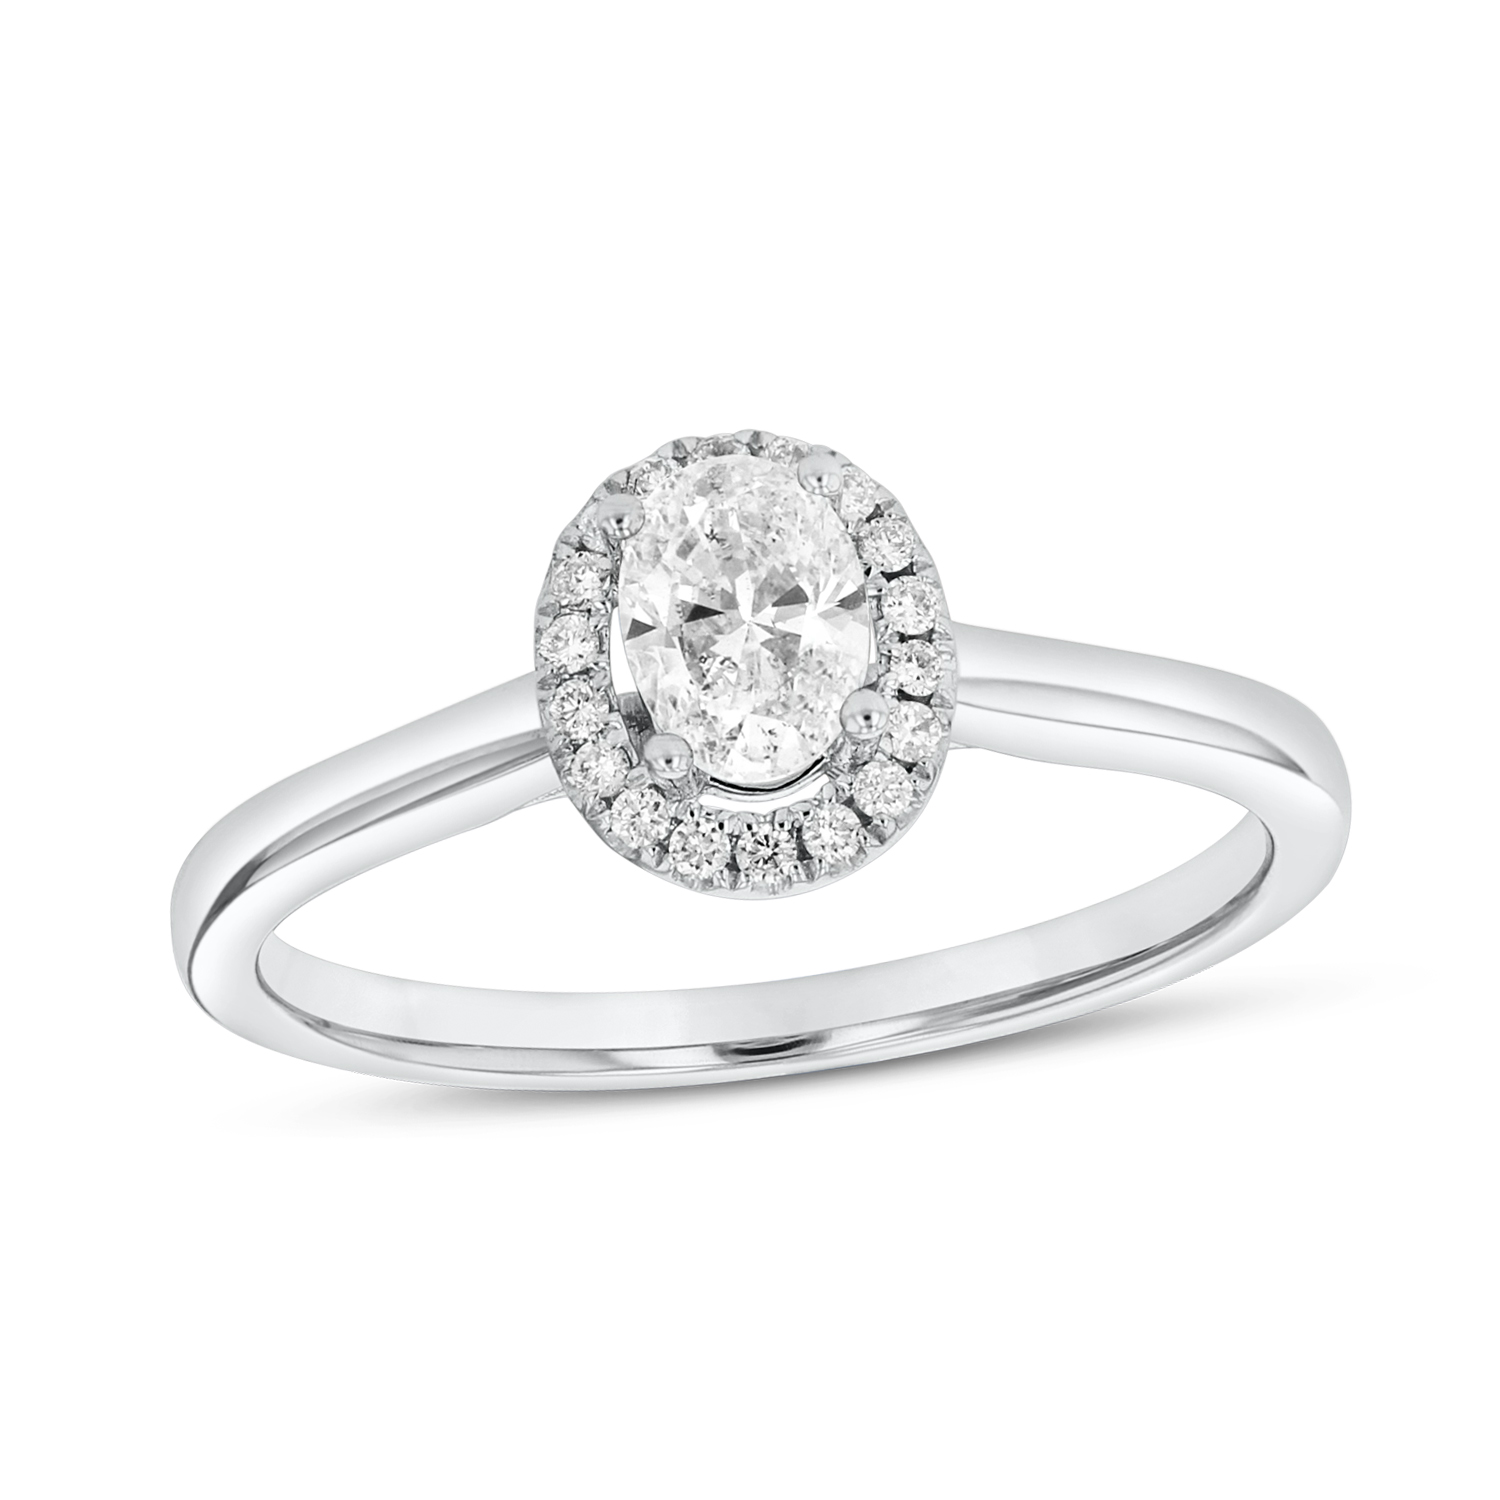 View 0.39ctw Diamond Engagement Ring in Platinum